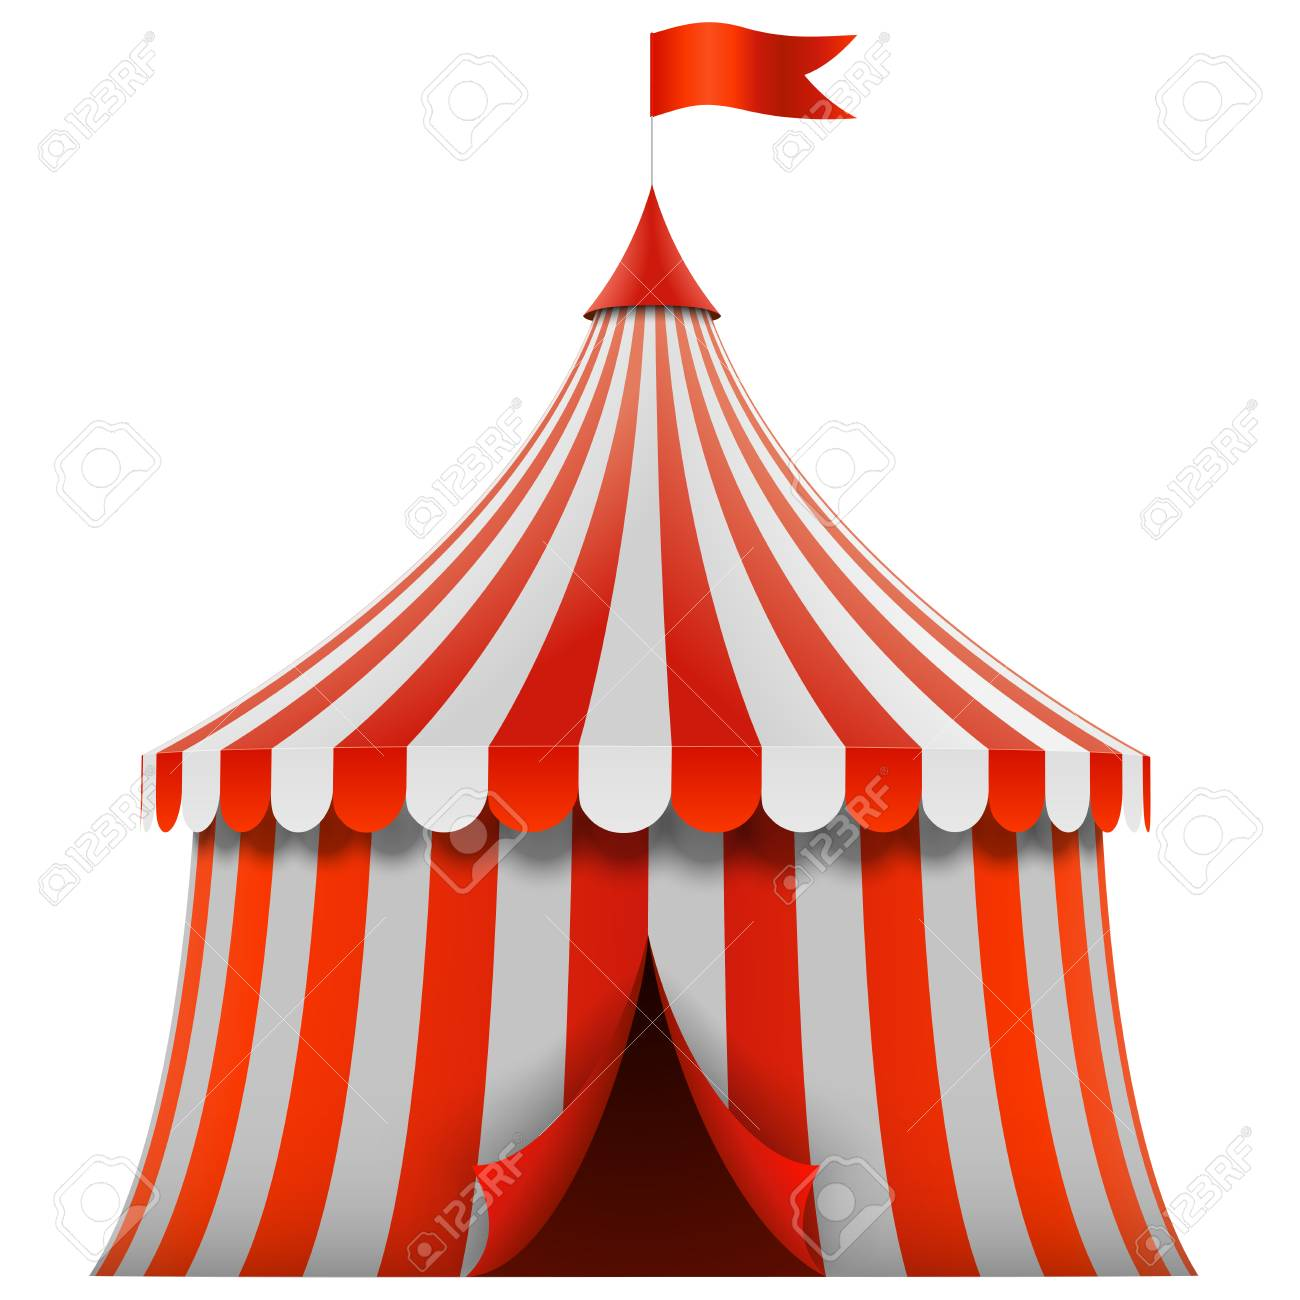 Image result for red and white circus tent